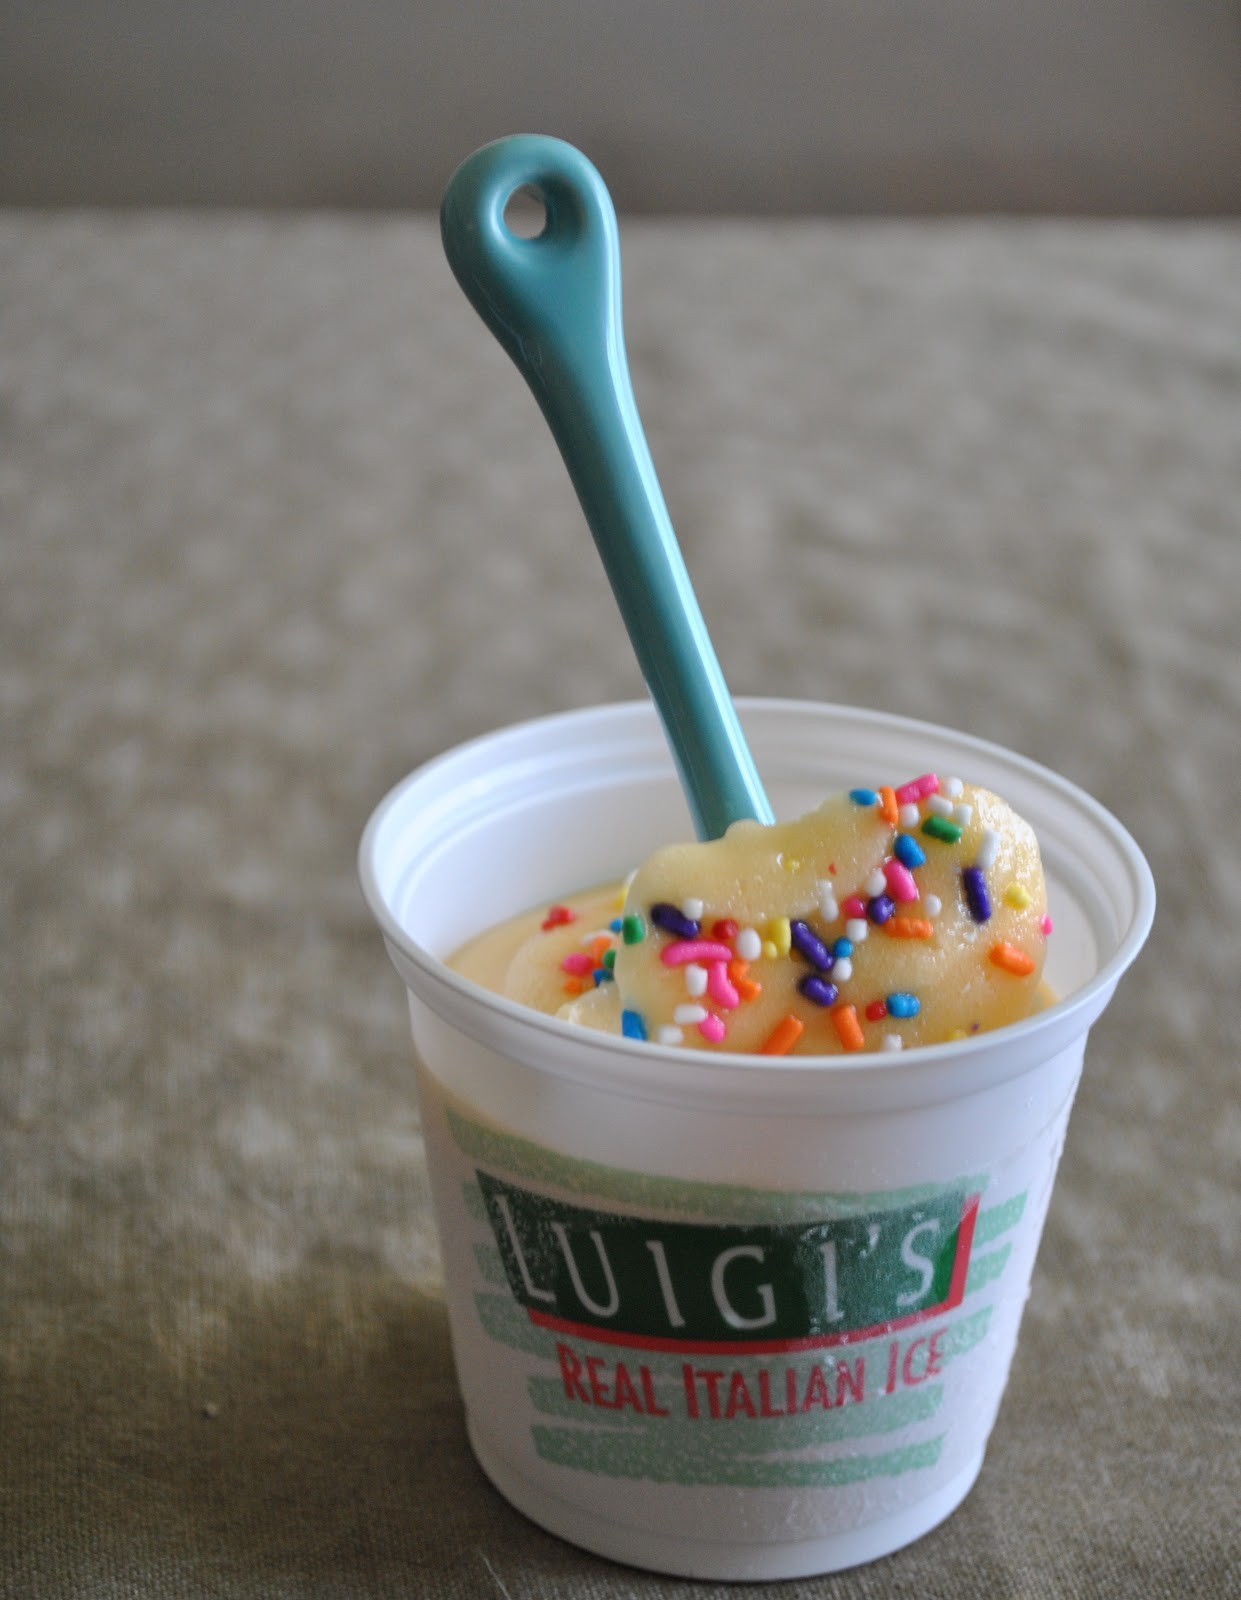 Luigis Limited Edition Birthday Cake Real Italian Ice